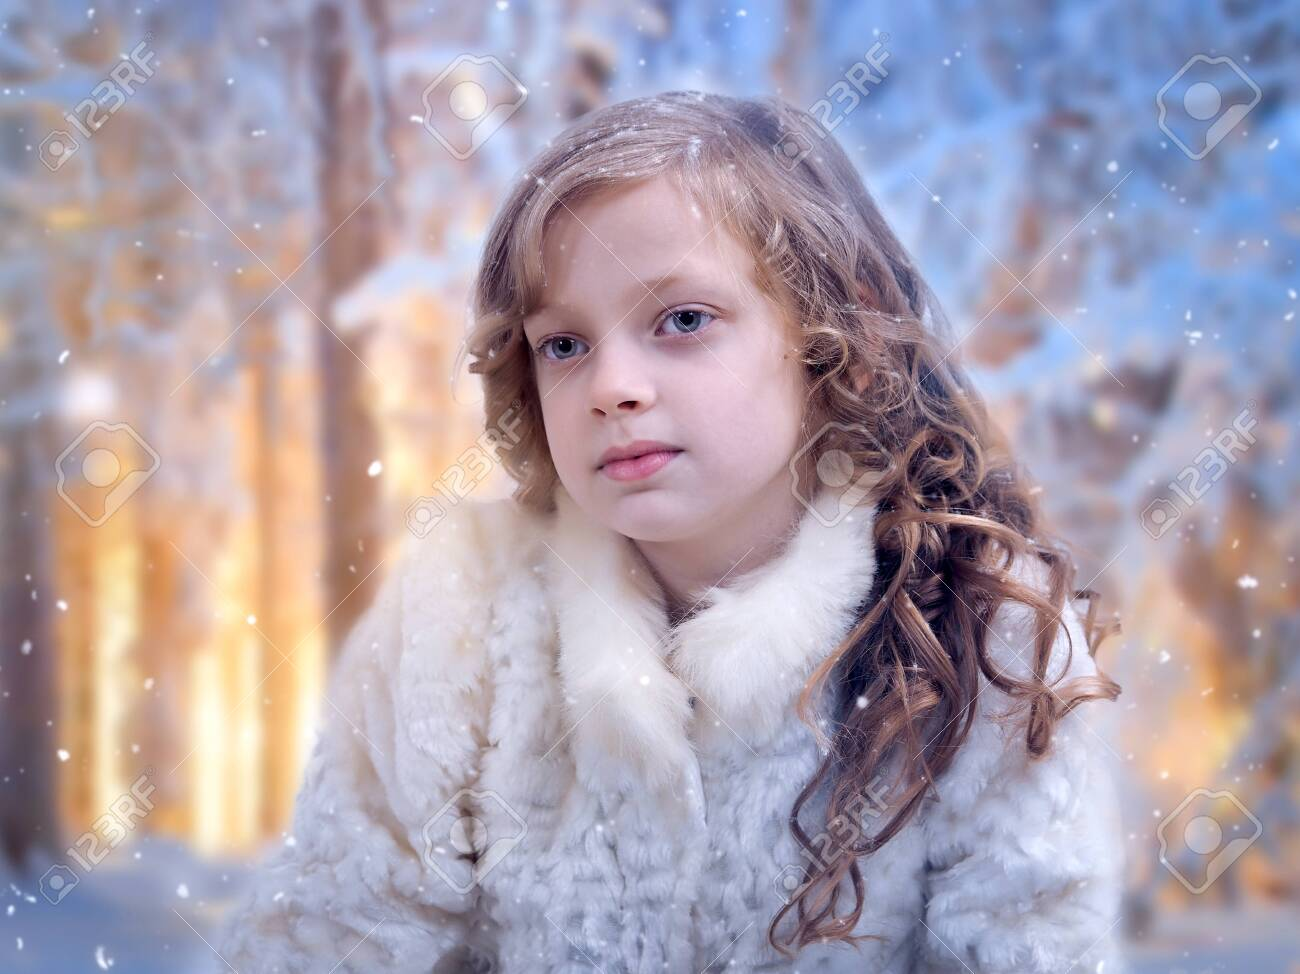 Very beautiful little girl under the falling snow - 135466940